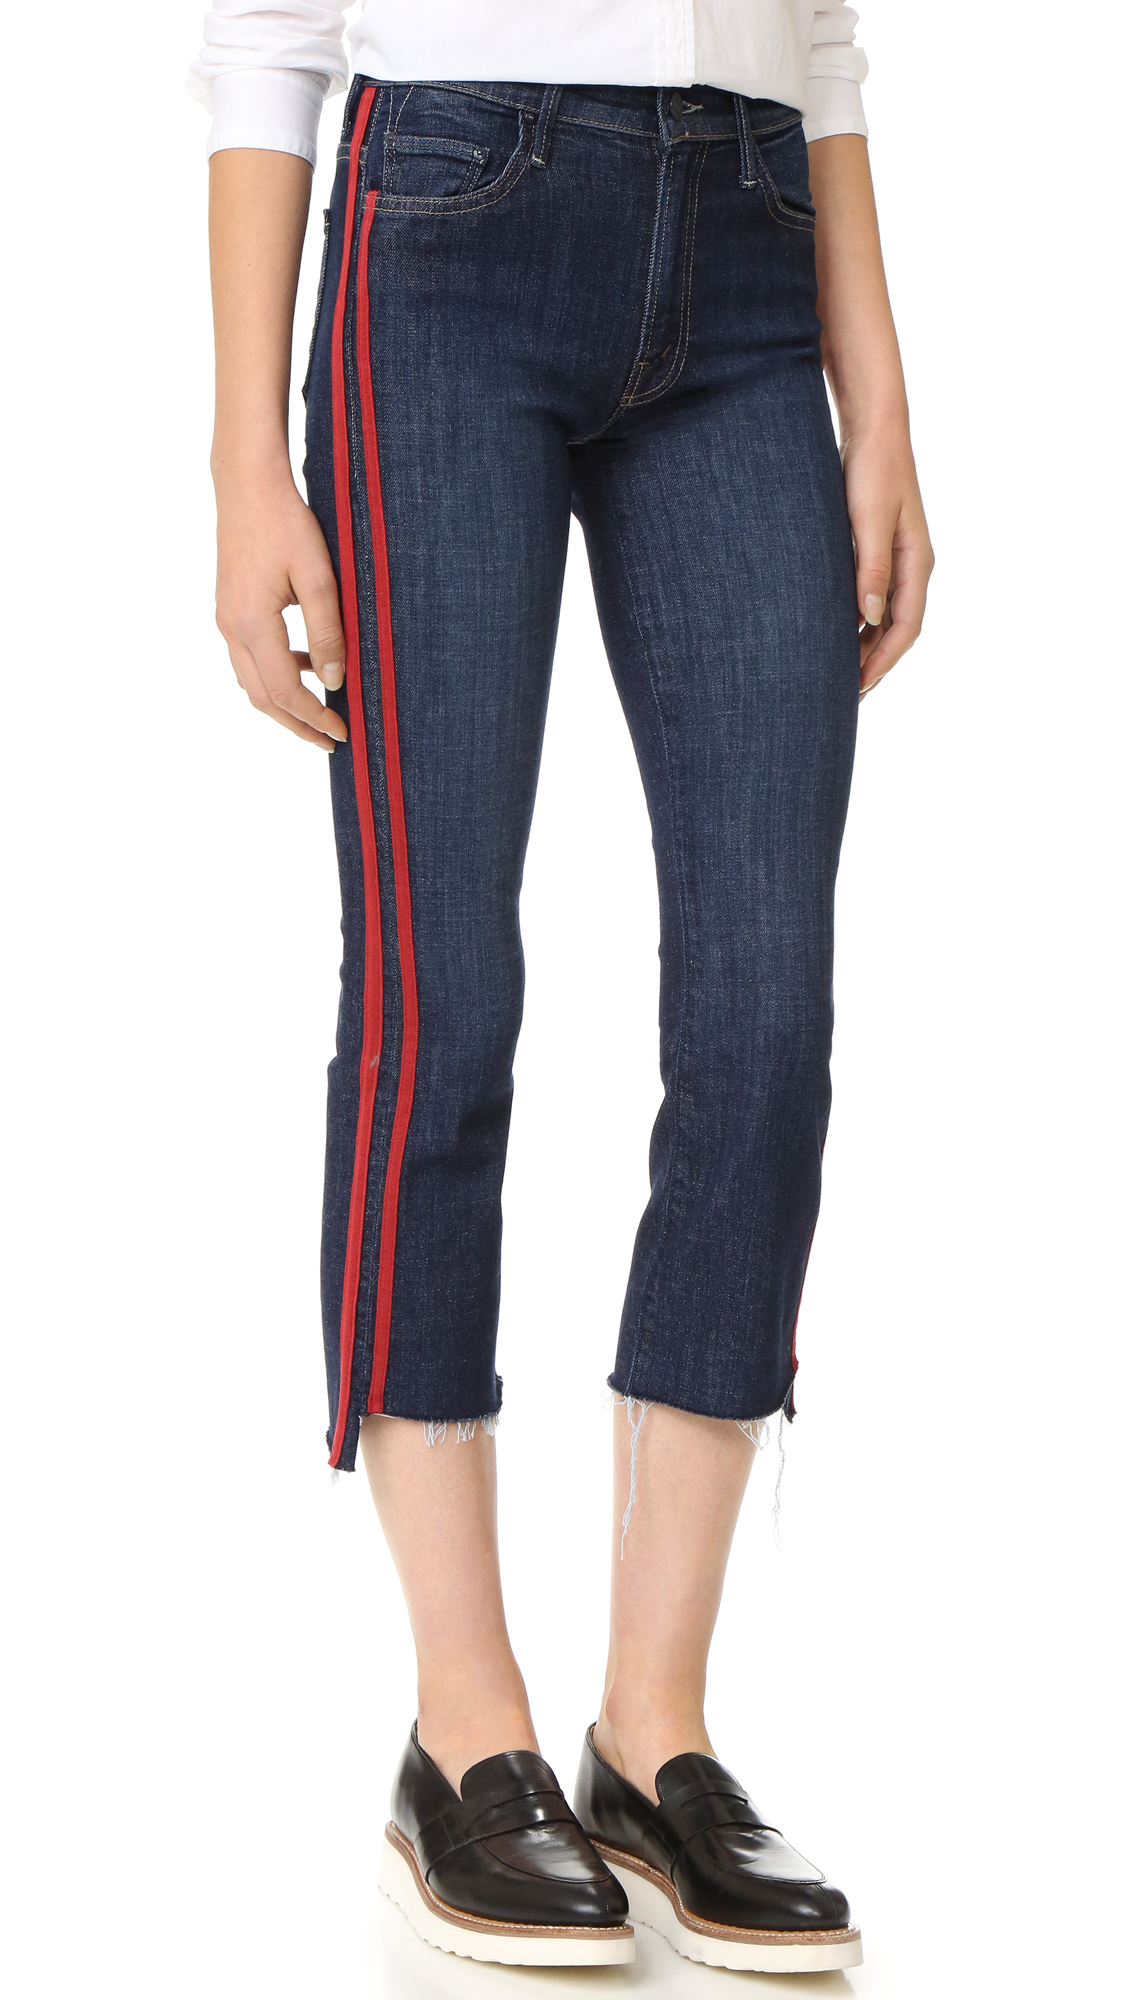 Contrast stripes accentuate the outseam on these high waisted MOTHER cropped jeans. Raw, notched hem. 5 pocket styling. Button closure and zip fly. Fabric: Stretch denim. 93% cotton/6% polyester/1% elastane. Wash cold. Made in the USA. Imported materials.